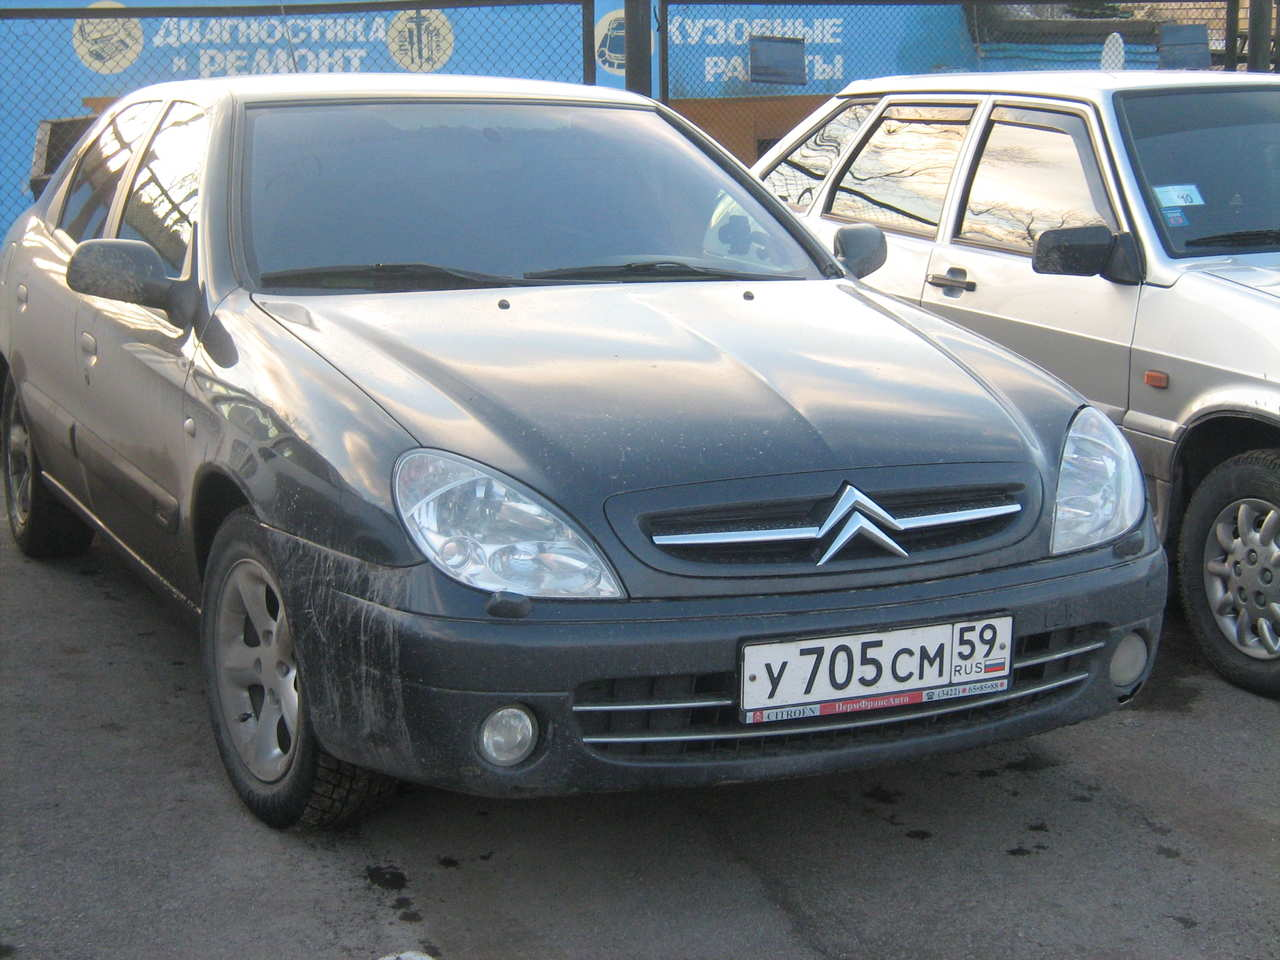 2003 citroen xsara pictures gasoline ff manual for sale. Black Bedroom Furniture Sets. Home Design Ideas